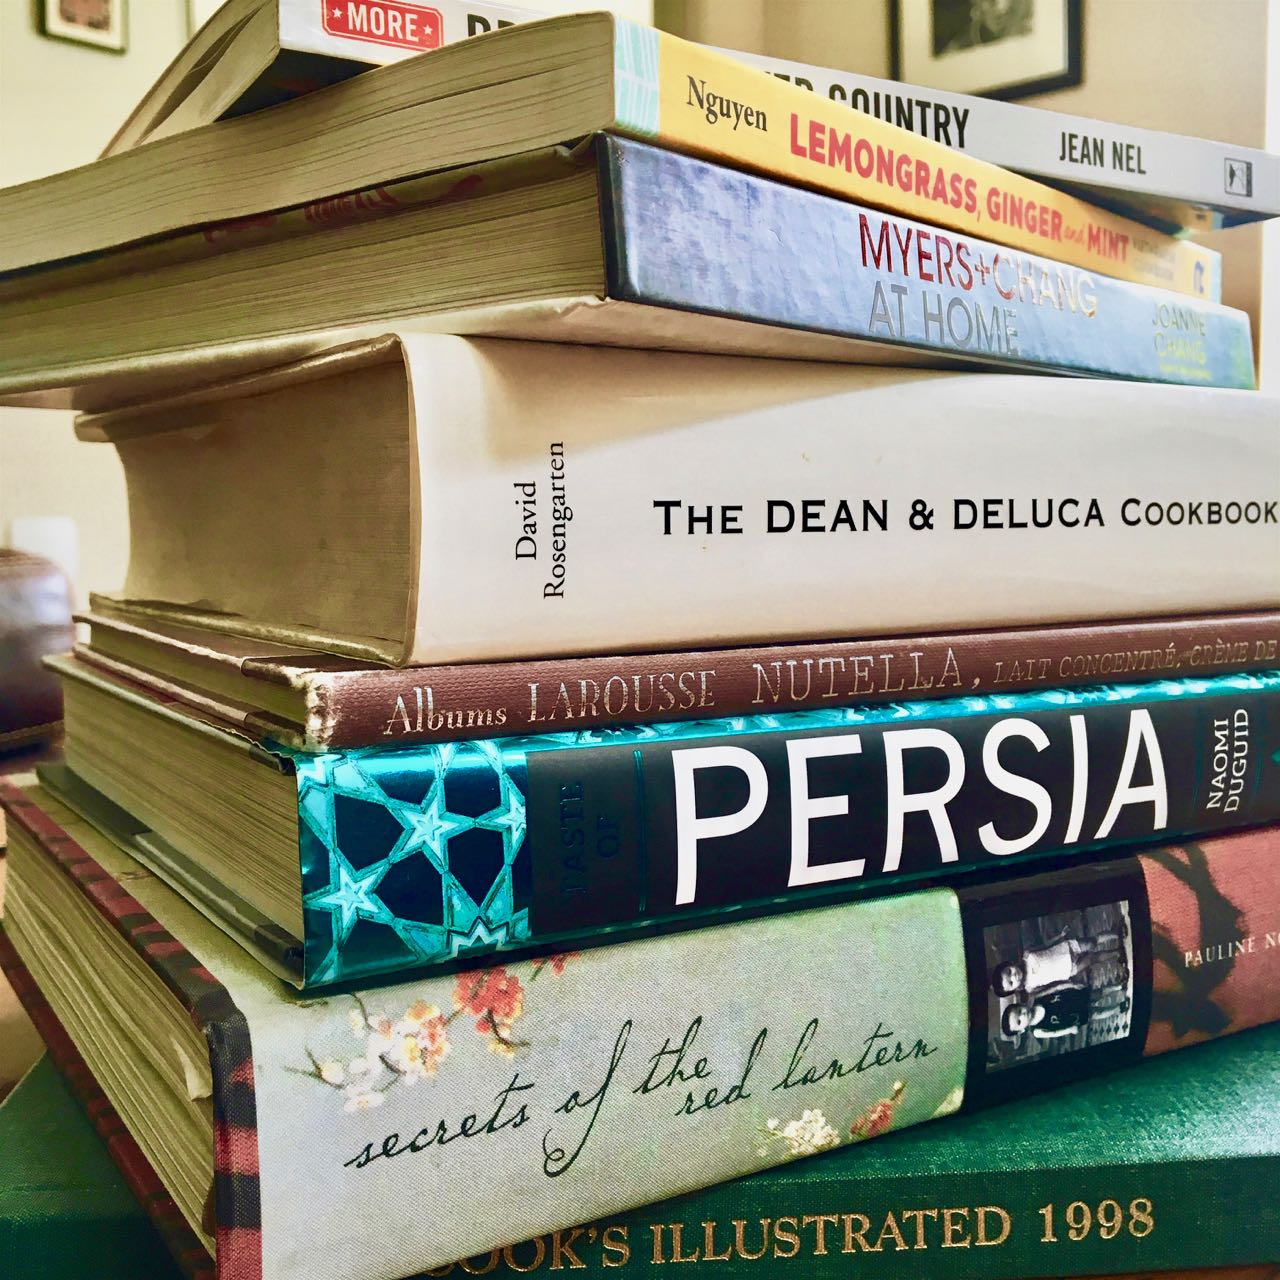 10 Great Cookbooks for Your Holiday Wishlist